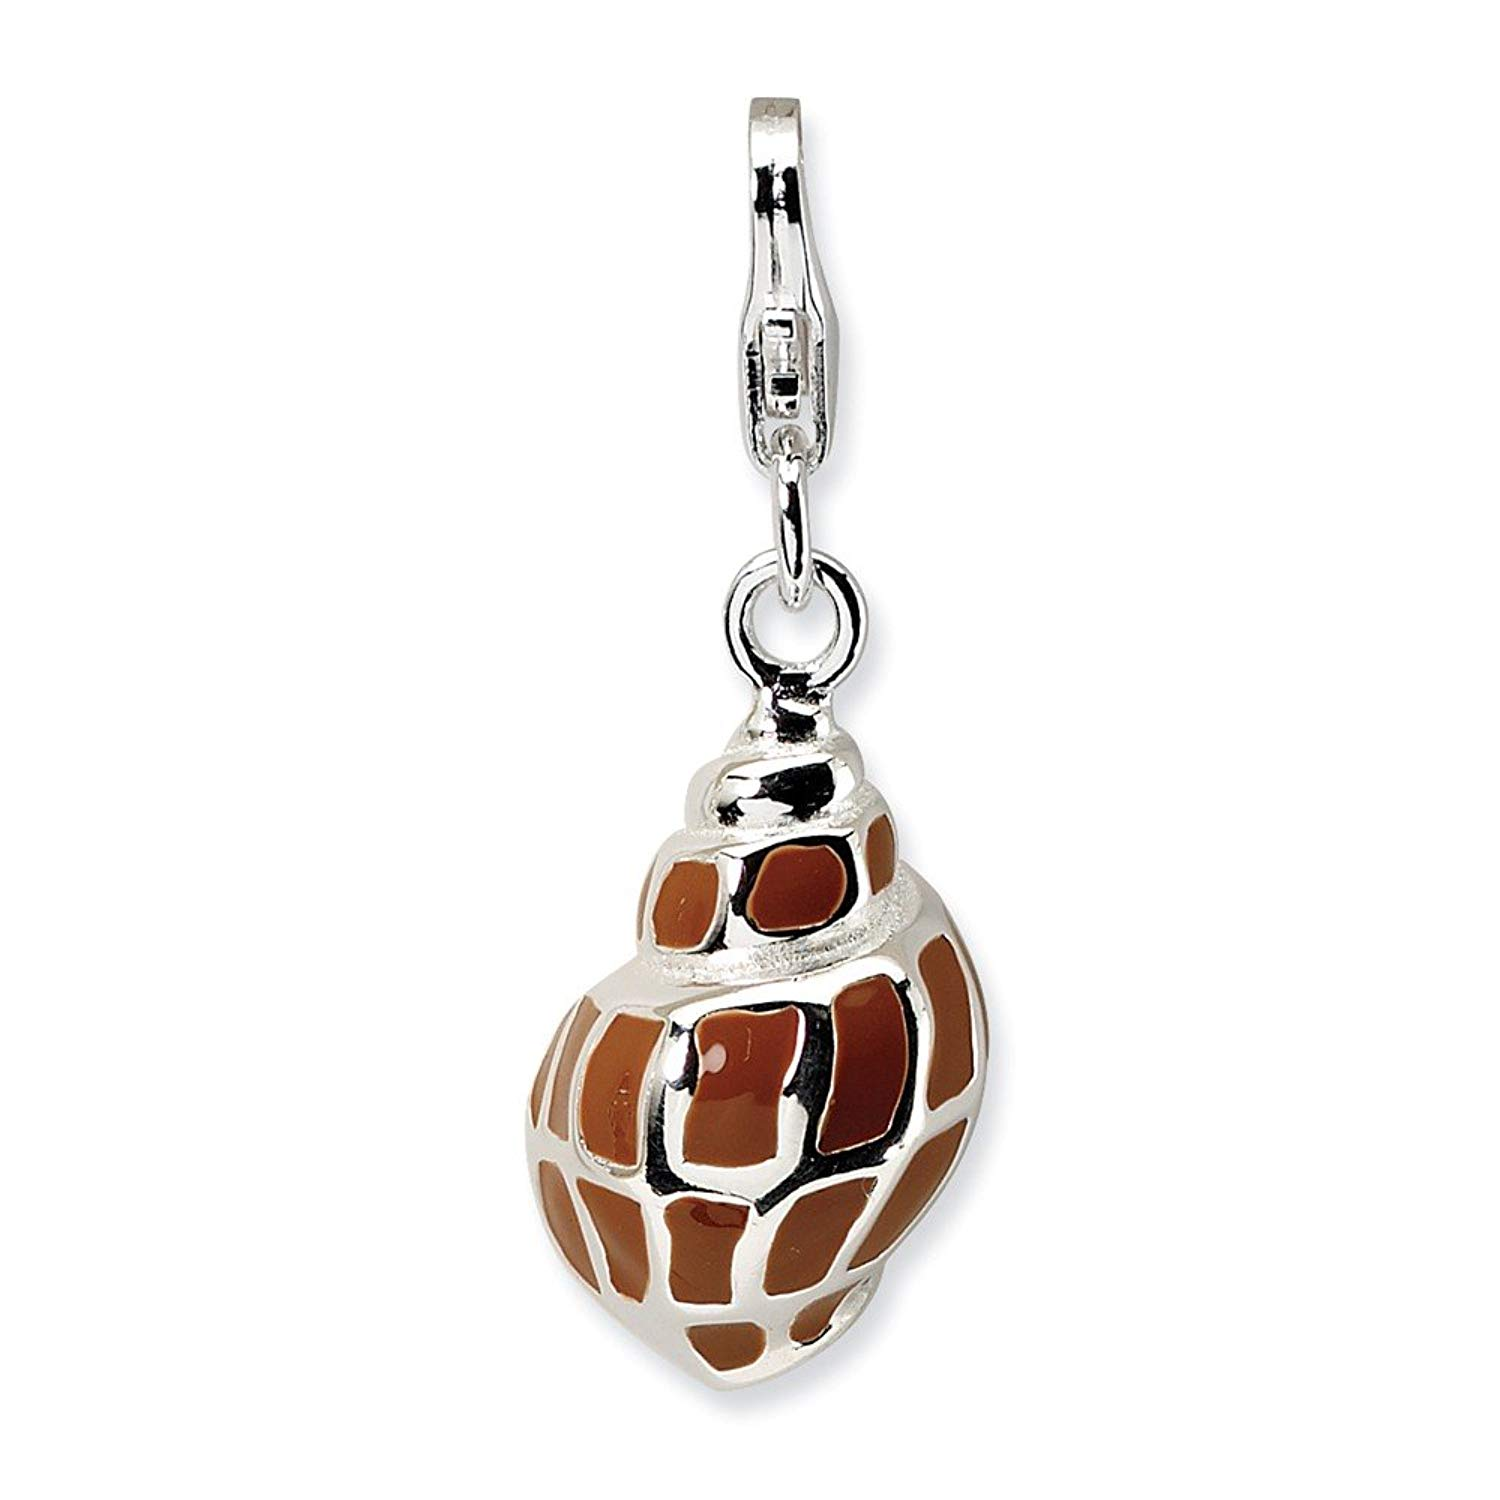 Jewelry Best Seller Sterling Silver 3-D Enameled Shell w/Lobster Clasp Charm